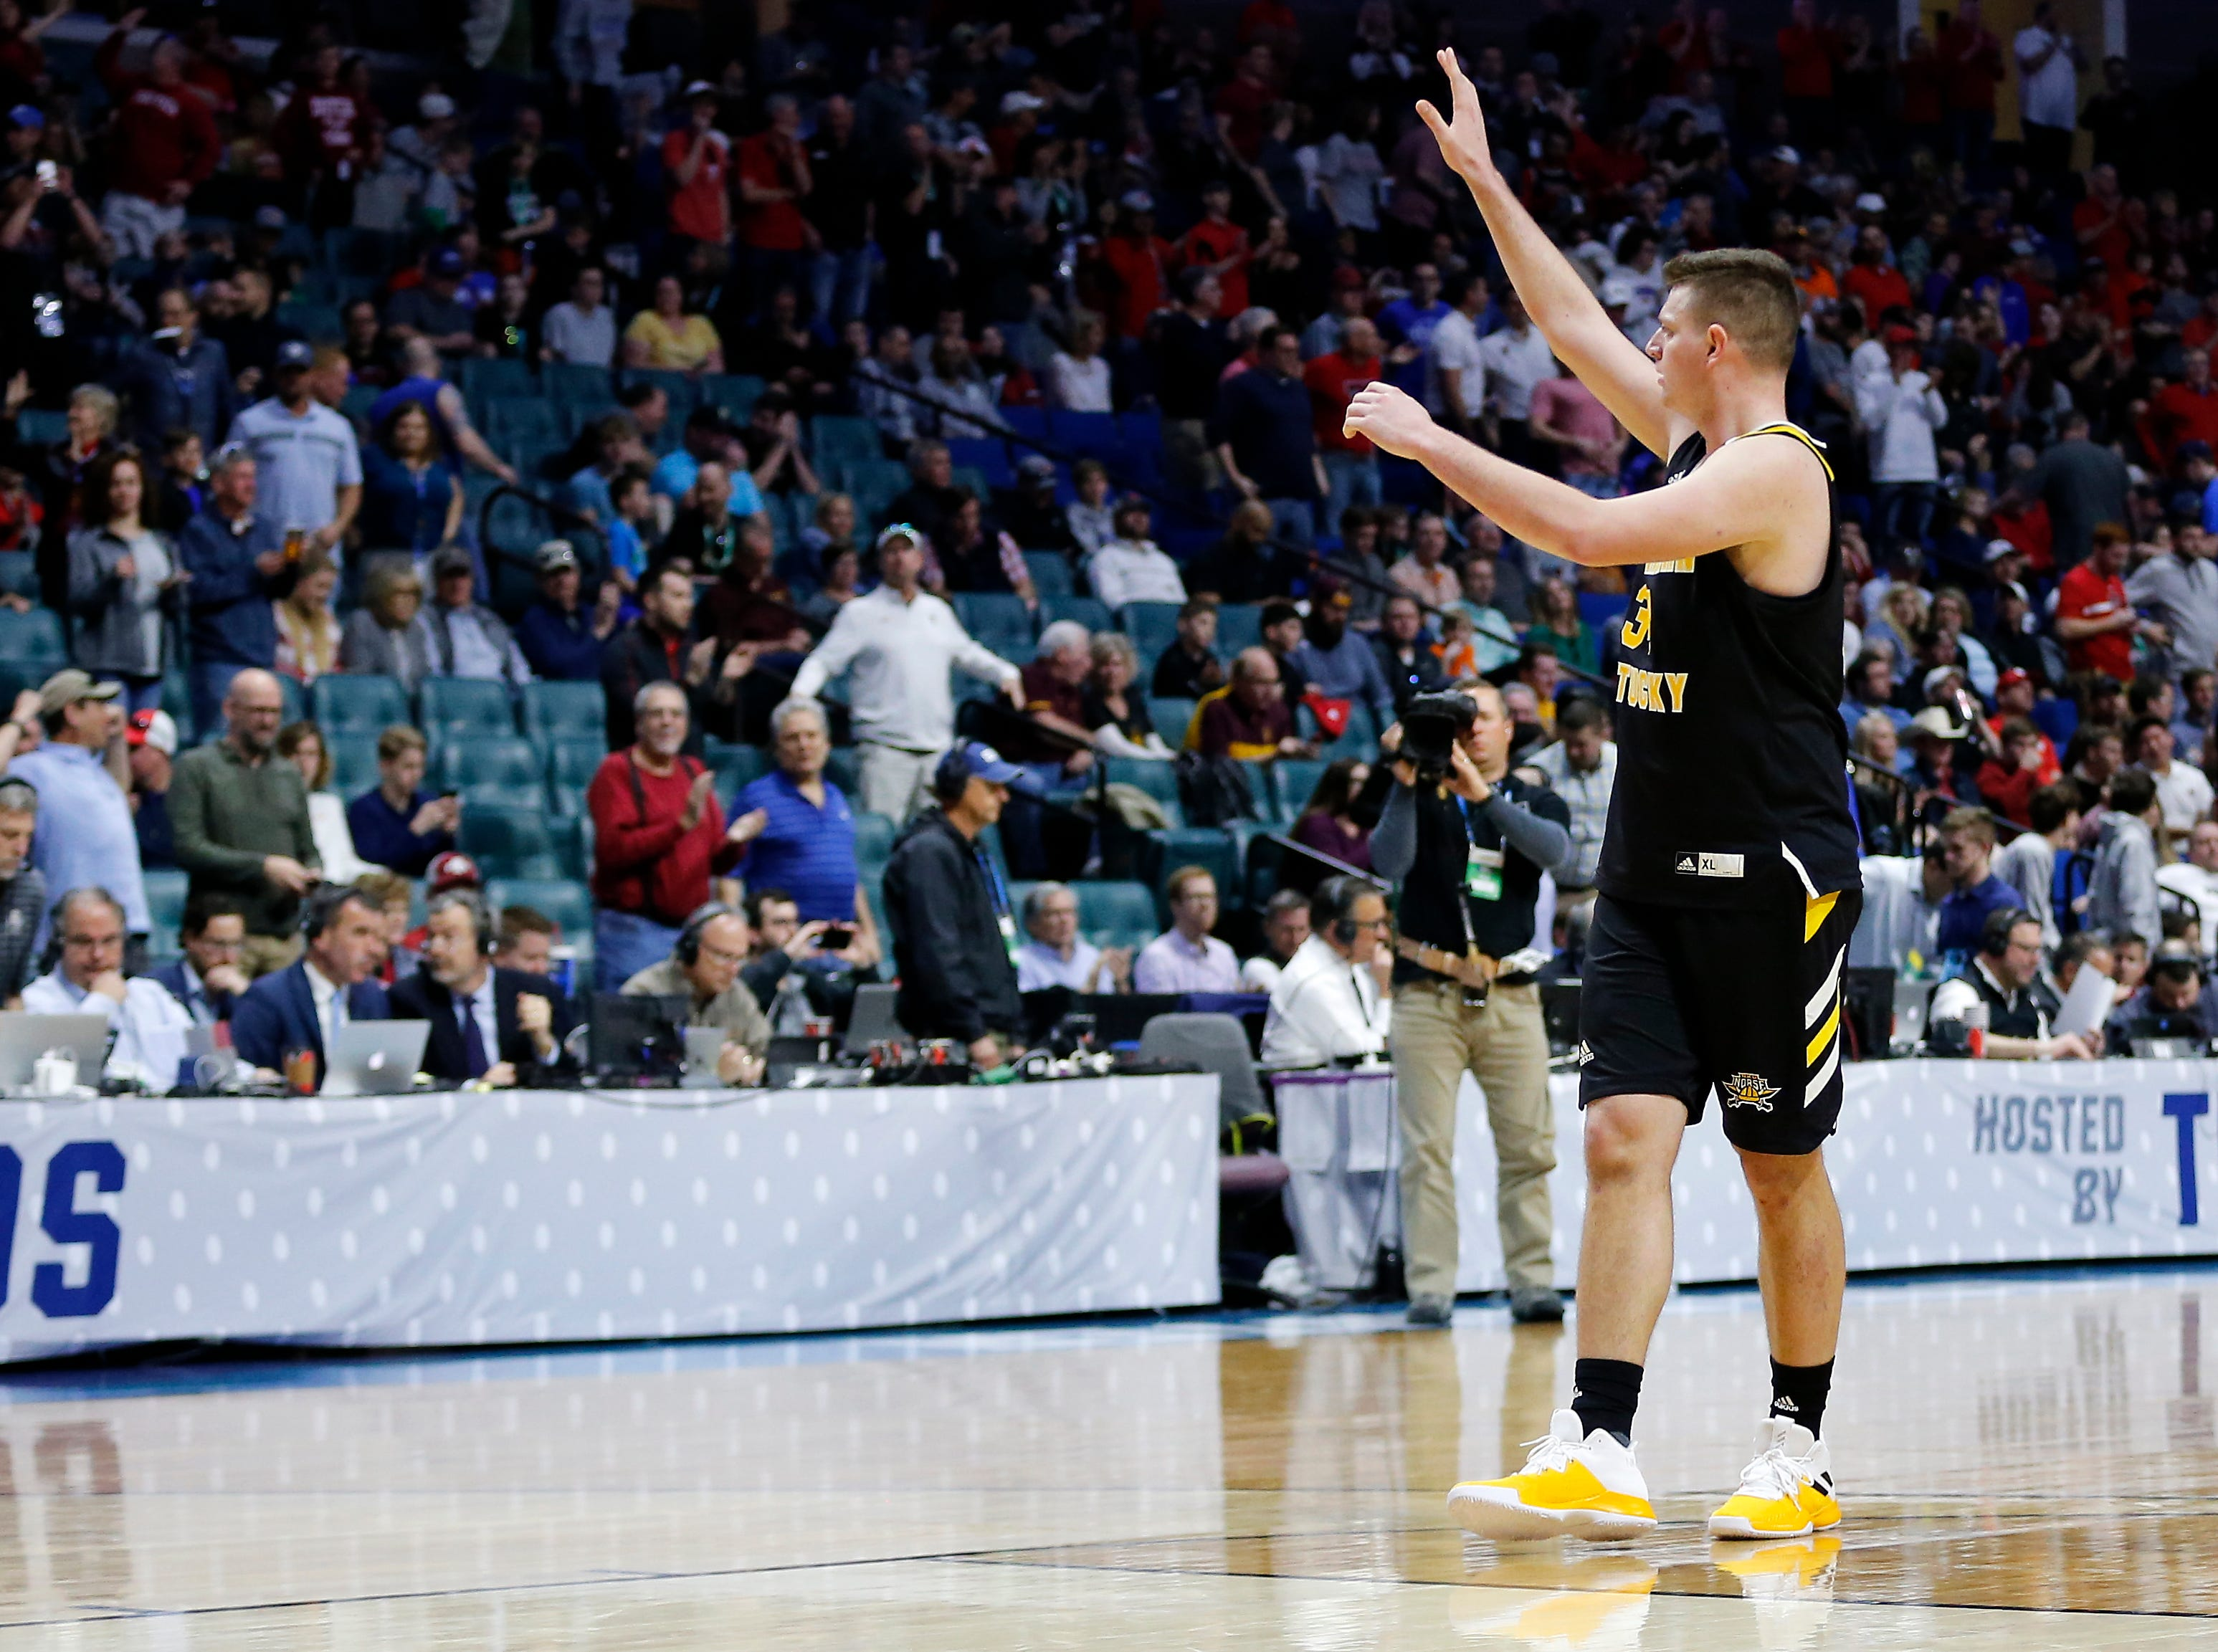 Northern Kentucky Norse forward Drew McDonald (34) waves and thanks the NKU fan section in the second half of the NCAA Tournament First Round game between the 14-seeded Northern Kentucky Norse and the 3-seeded Texas Tech Red Raiders the BOK Center in downtown Tulsa on Friday, March 22, 2019. NKU was knocked from the tournament with a 72-57 loss to the Red Raiders.